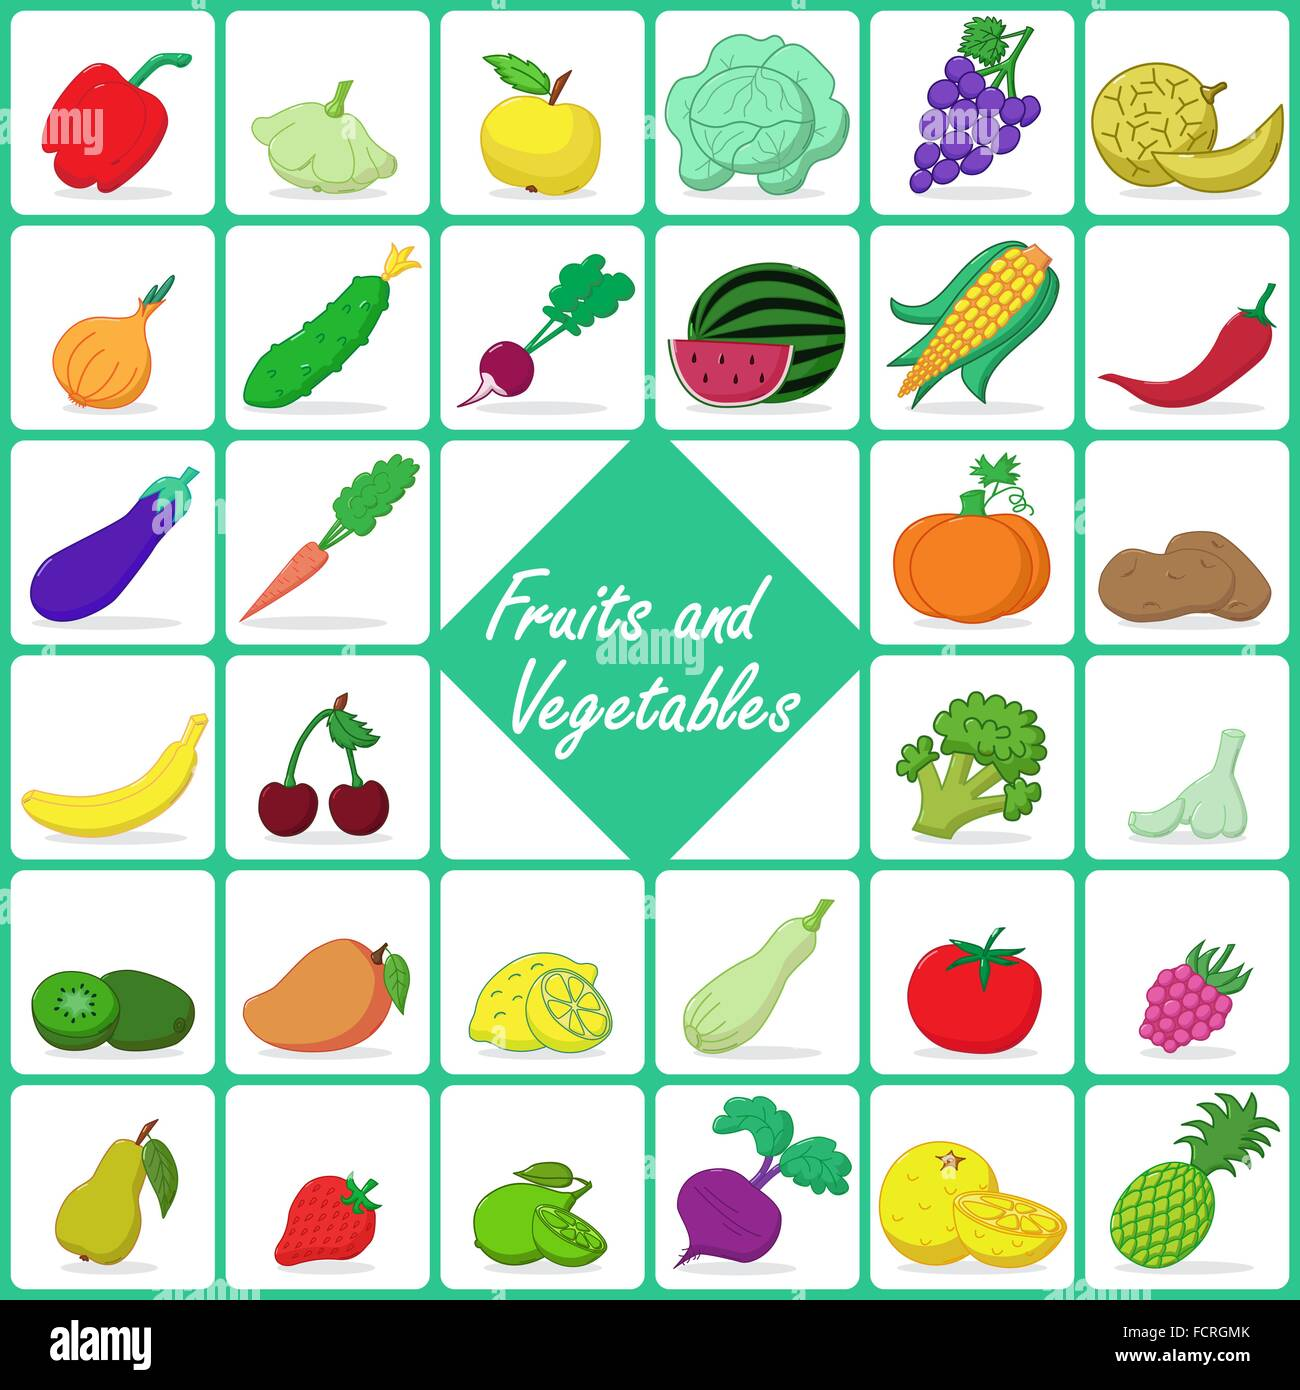 Colored icons of fruits and vegetables - Stock Vector